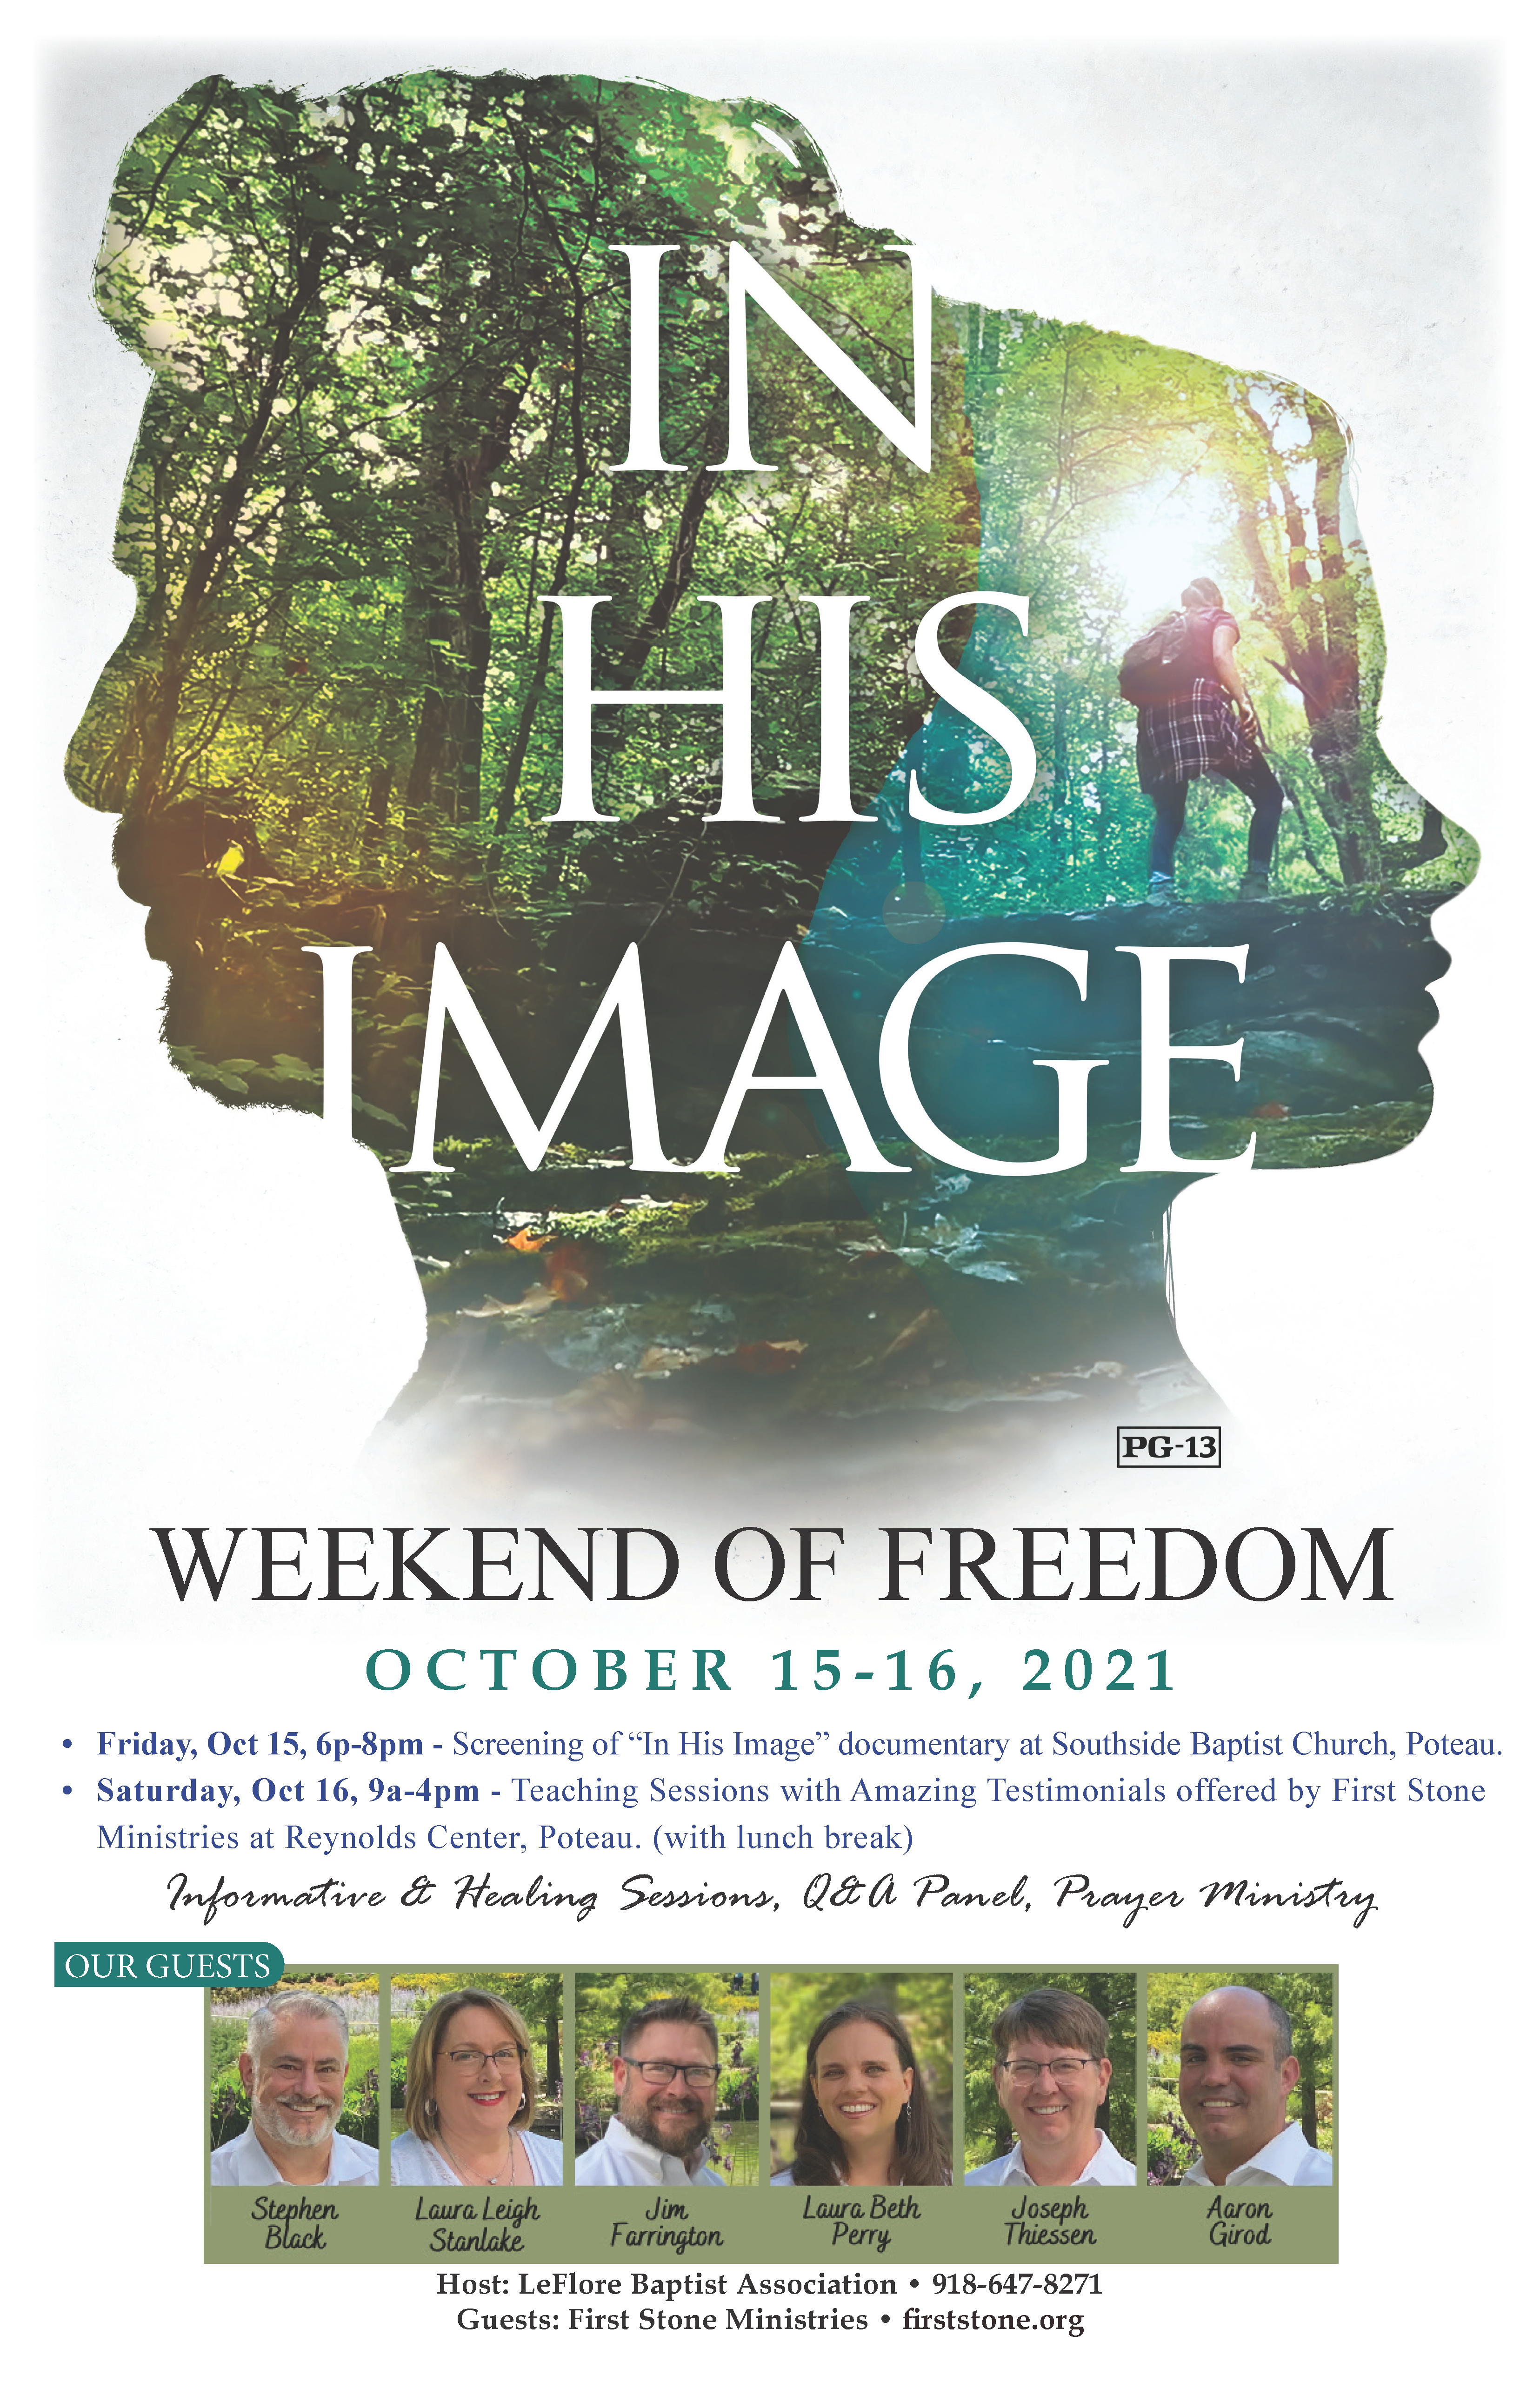 IHI Weekend of Freedom Poster